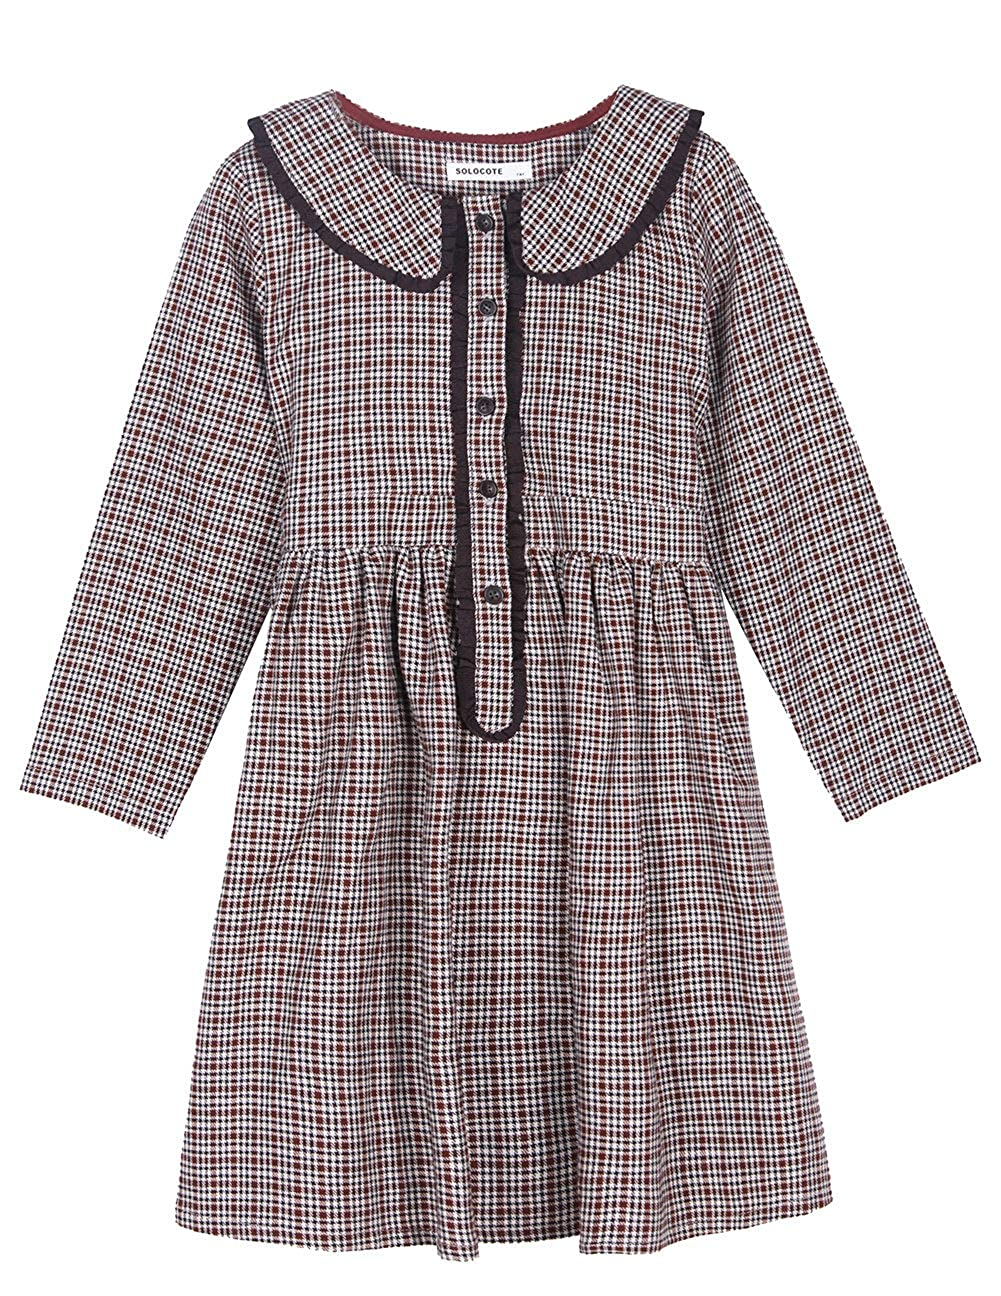 1920s Children Fashions: Girls, Boys, Baby Costumes SOLOCOTE Girls Plaid Dress Grey Spring Long Sleeve Dresses Peter Pan Collar 3-14Y $25.99 AT vintagedancer.com